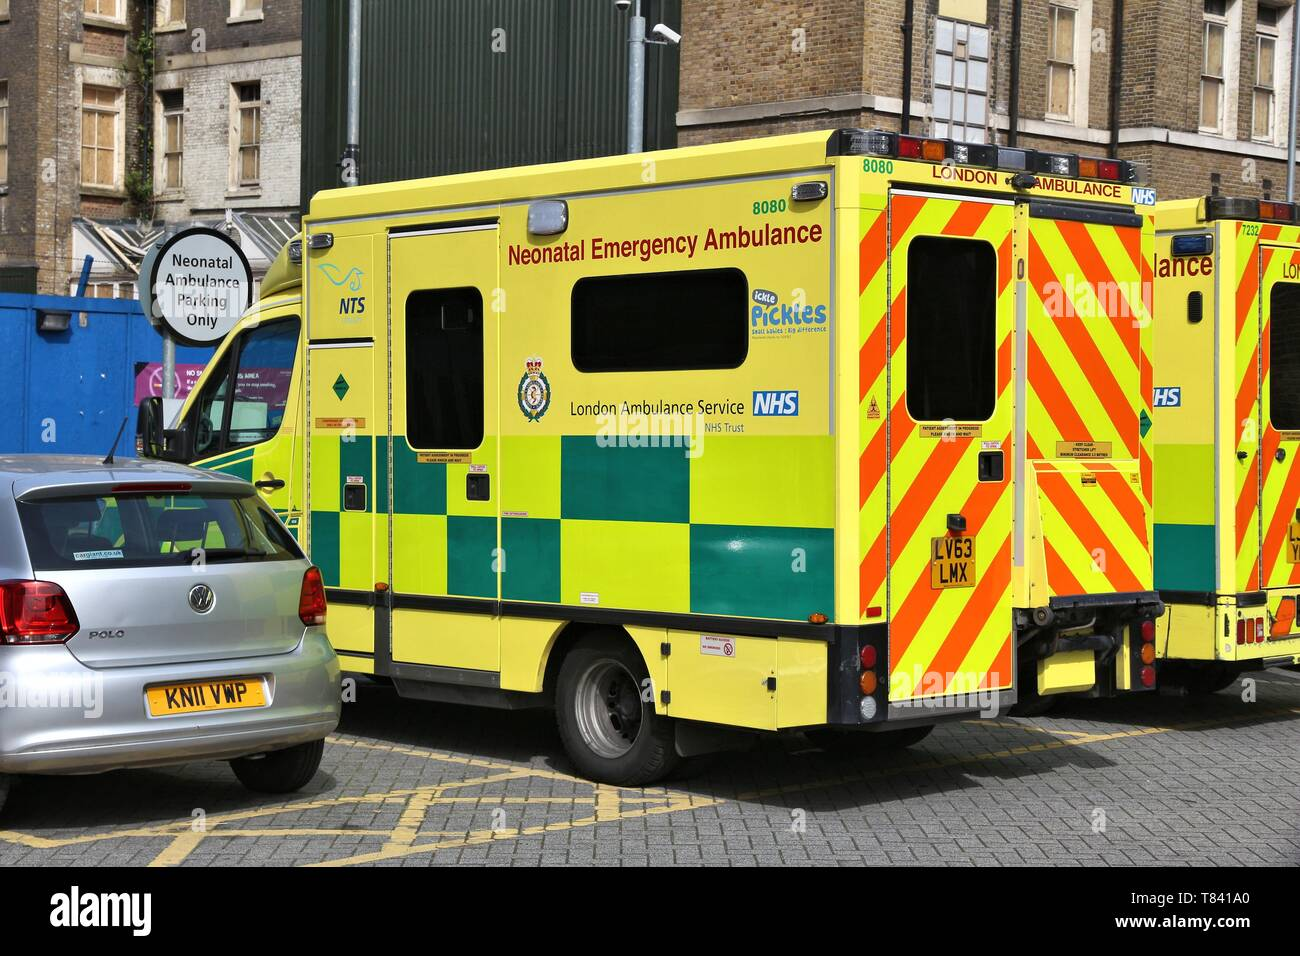 LONDON, UK - JULY 6, 2016: London Ambulance Service operated Neonatal Emergency Ambulance. It is part of National Health Service (NHS) in the UK. - Stock Image